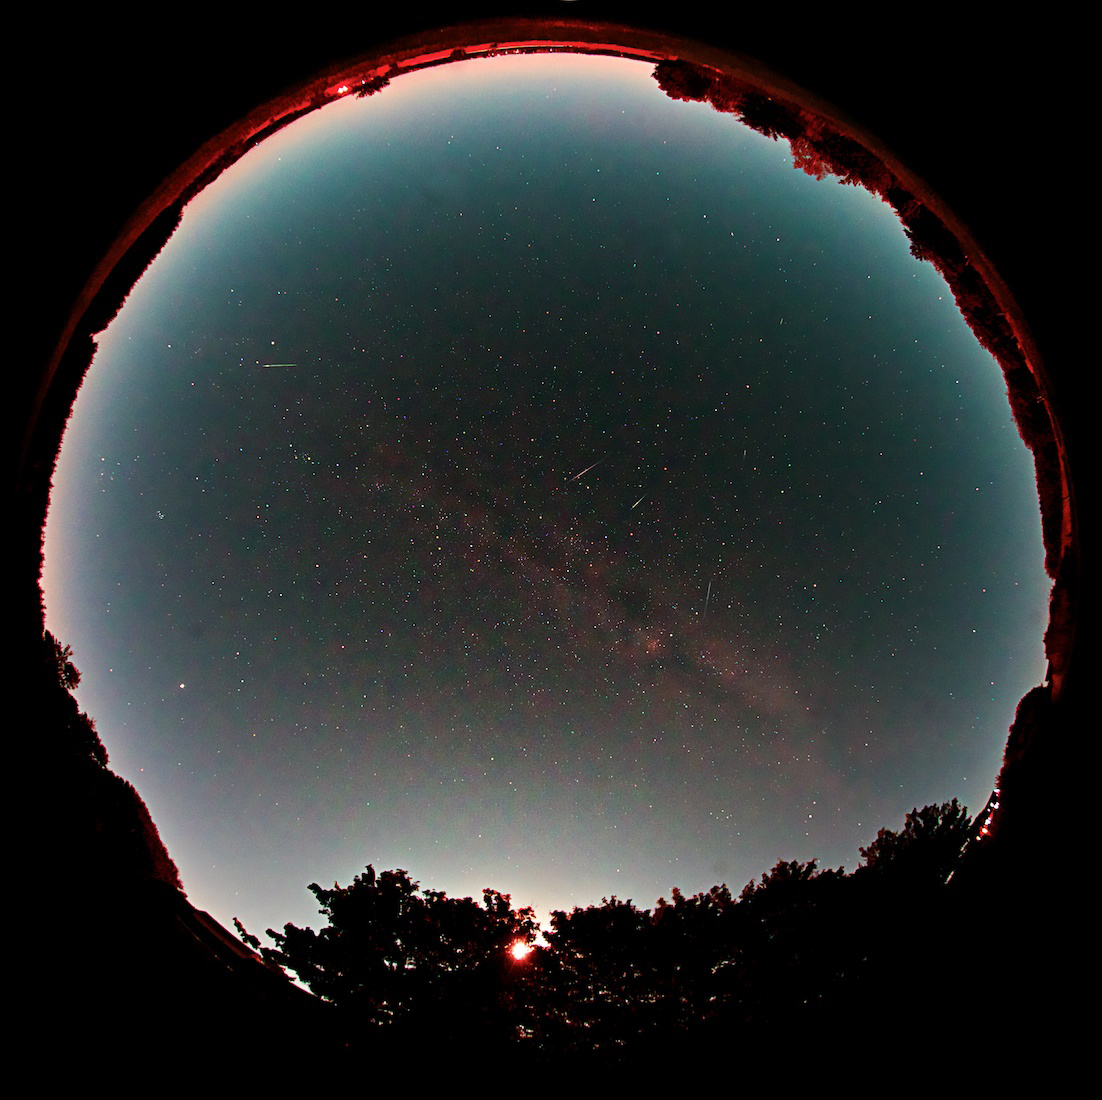 Jesper Grønne of Silkeborg, Denmark used a fisheye lens to make this image of Draconid meteors in October, 2011.